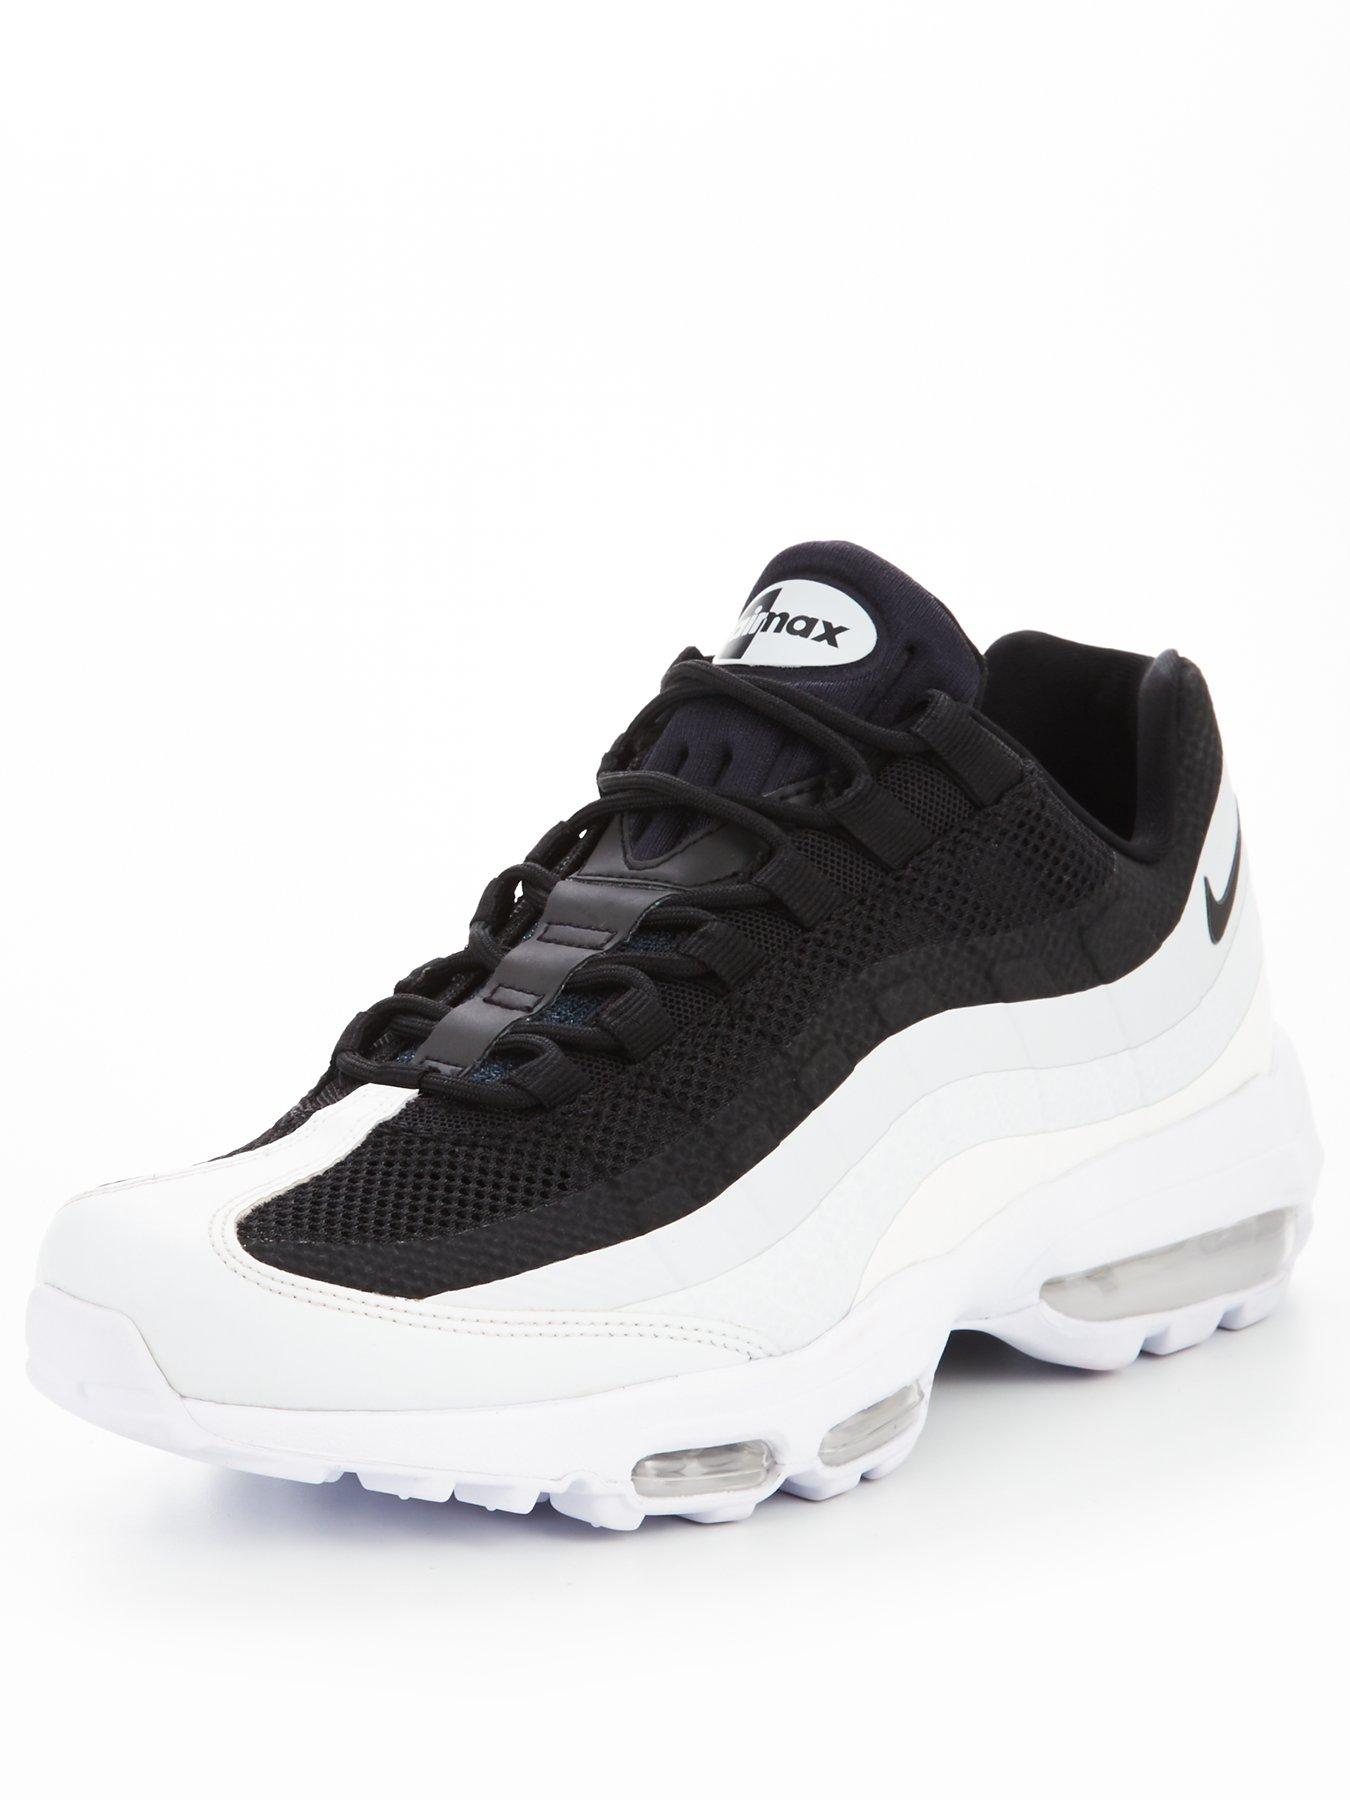 Nike Air Max 95 Ultra Essential Black/White/Platinum 1600172165 Men's Shoes Nike Trainers